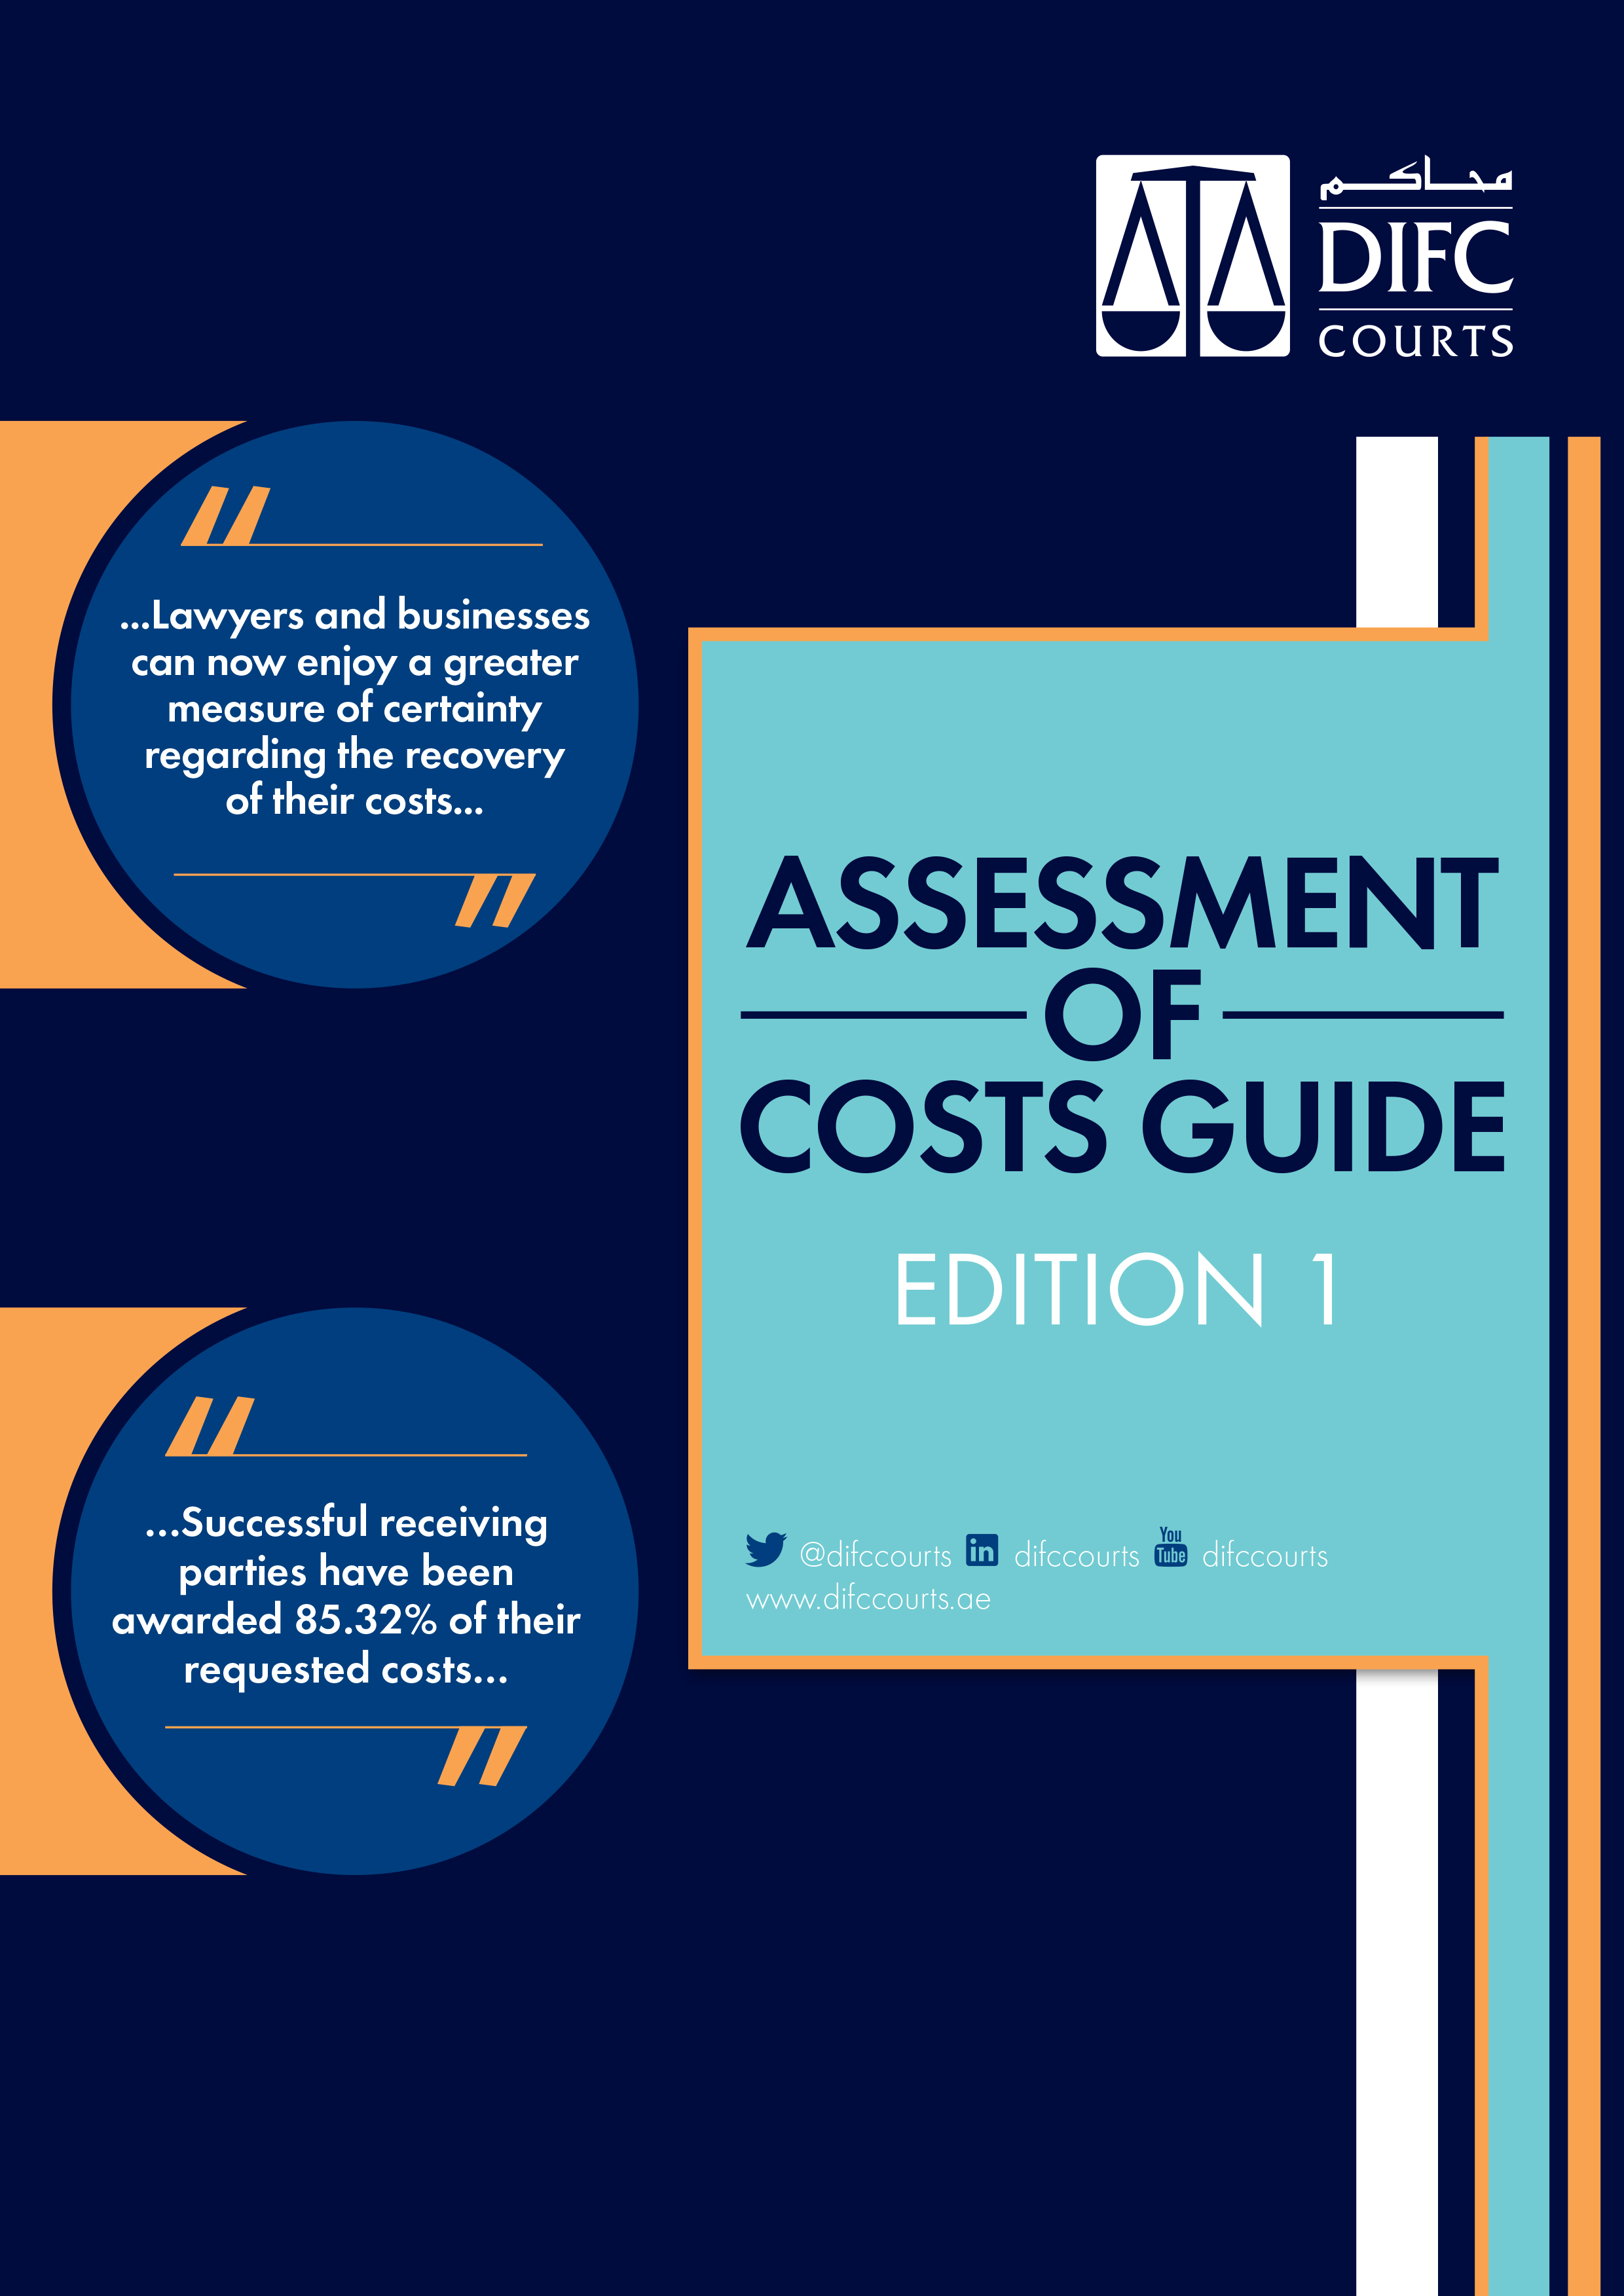 Assessment of Costs Guide